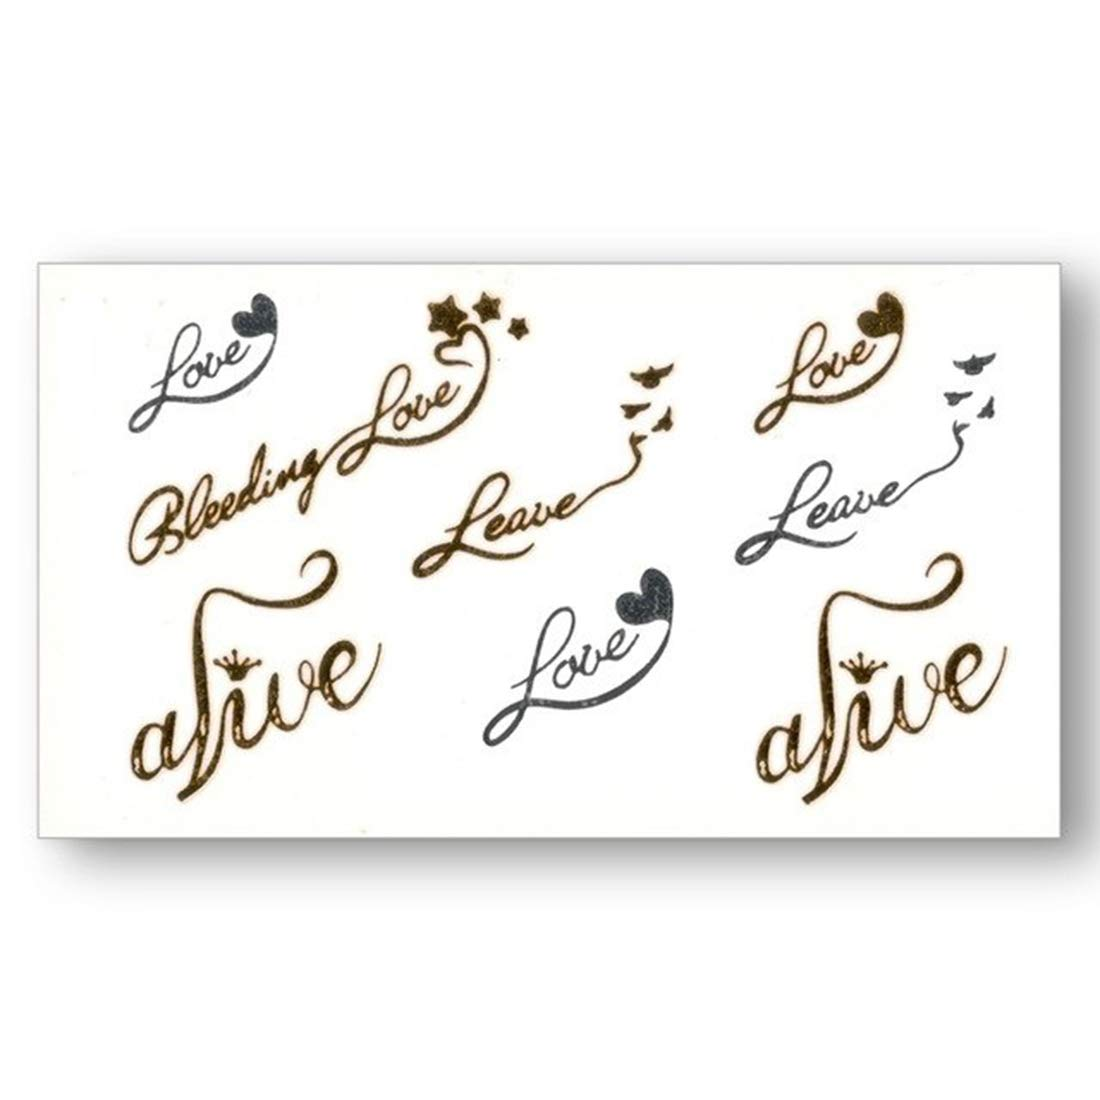 S A V I 3d Temporary Tattoo Golden And Silver Metallic Sticker Cute Love Alive Text Design Size 10 5x6cm 1pc Gold 4 G Amazon In Beauty